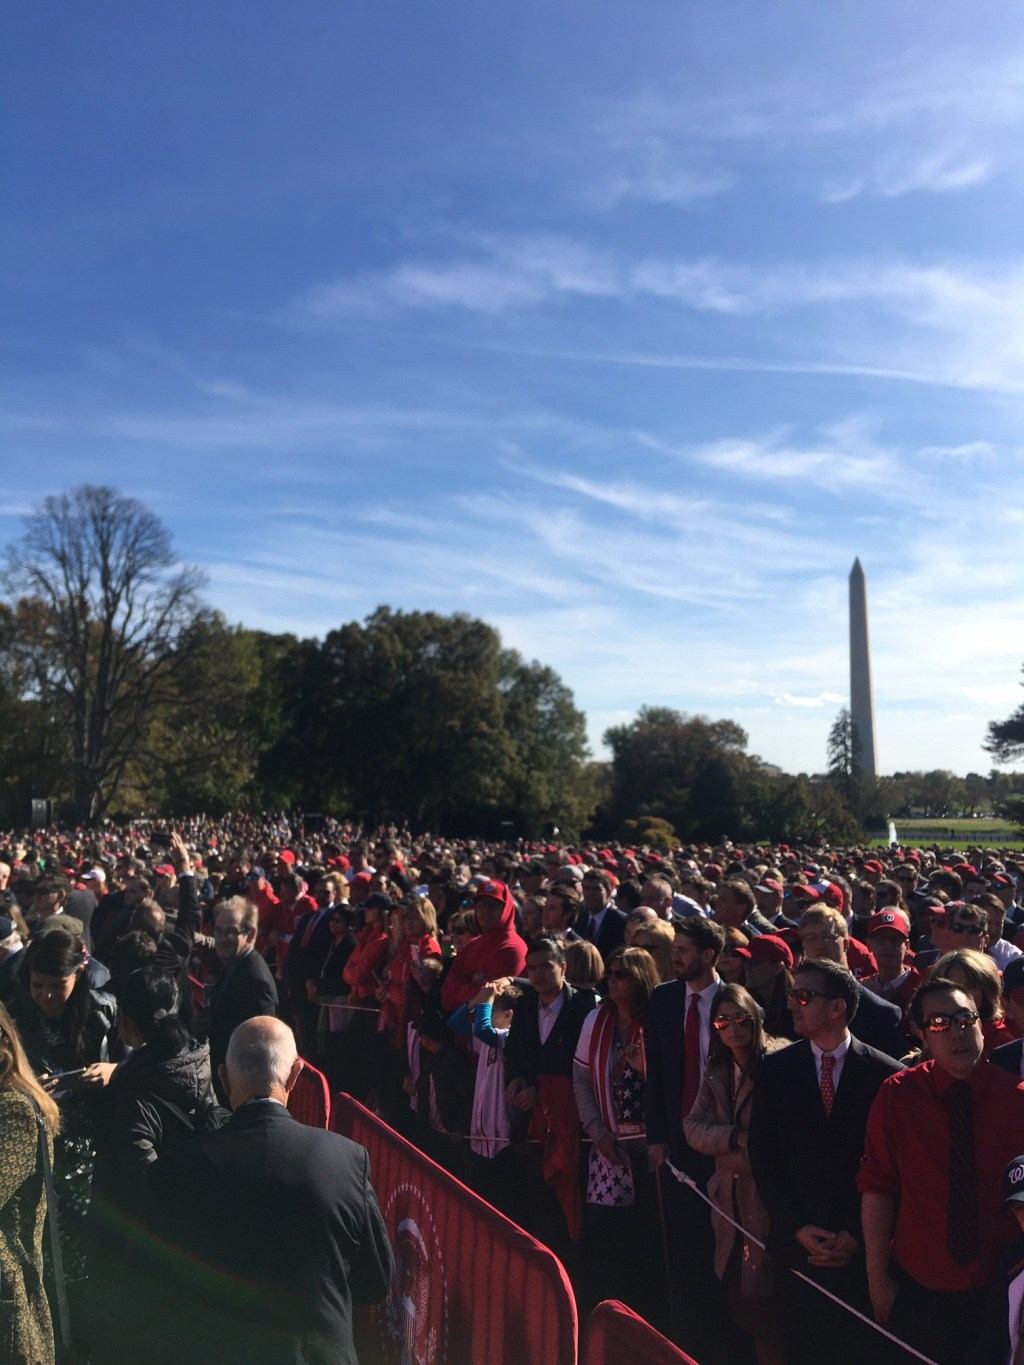 Washington Nationals fans on the White House's South Lawn Monday afternoon. (John T. Bennett/CQ Roll Call)